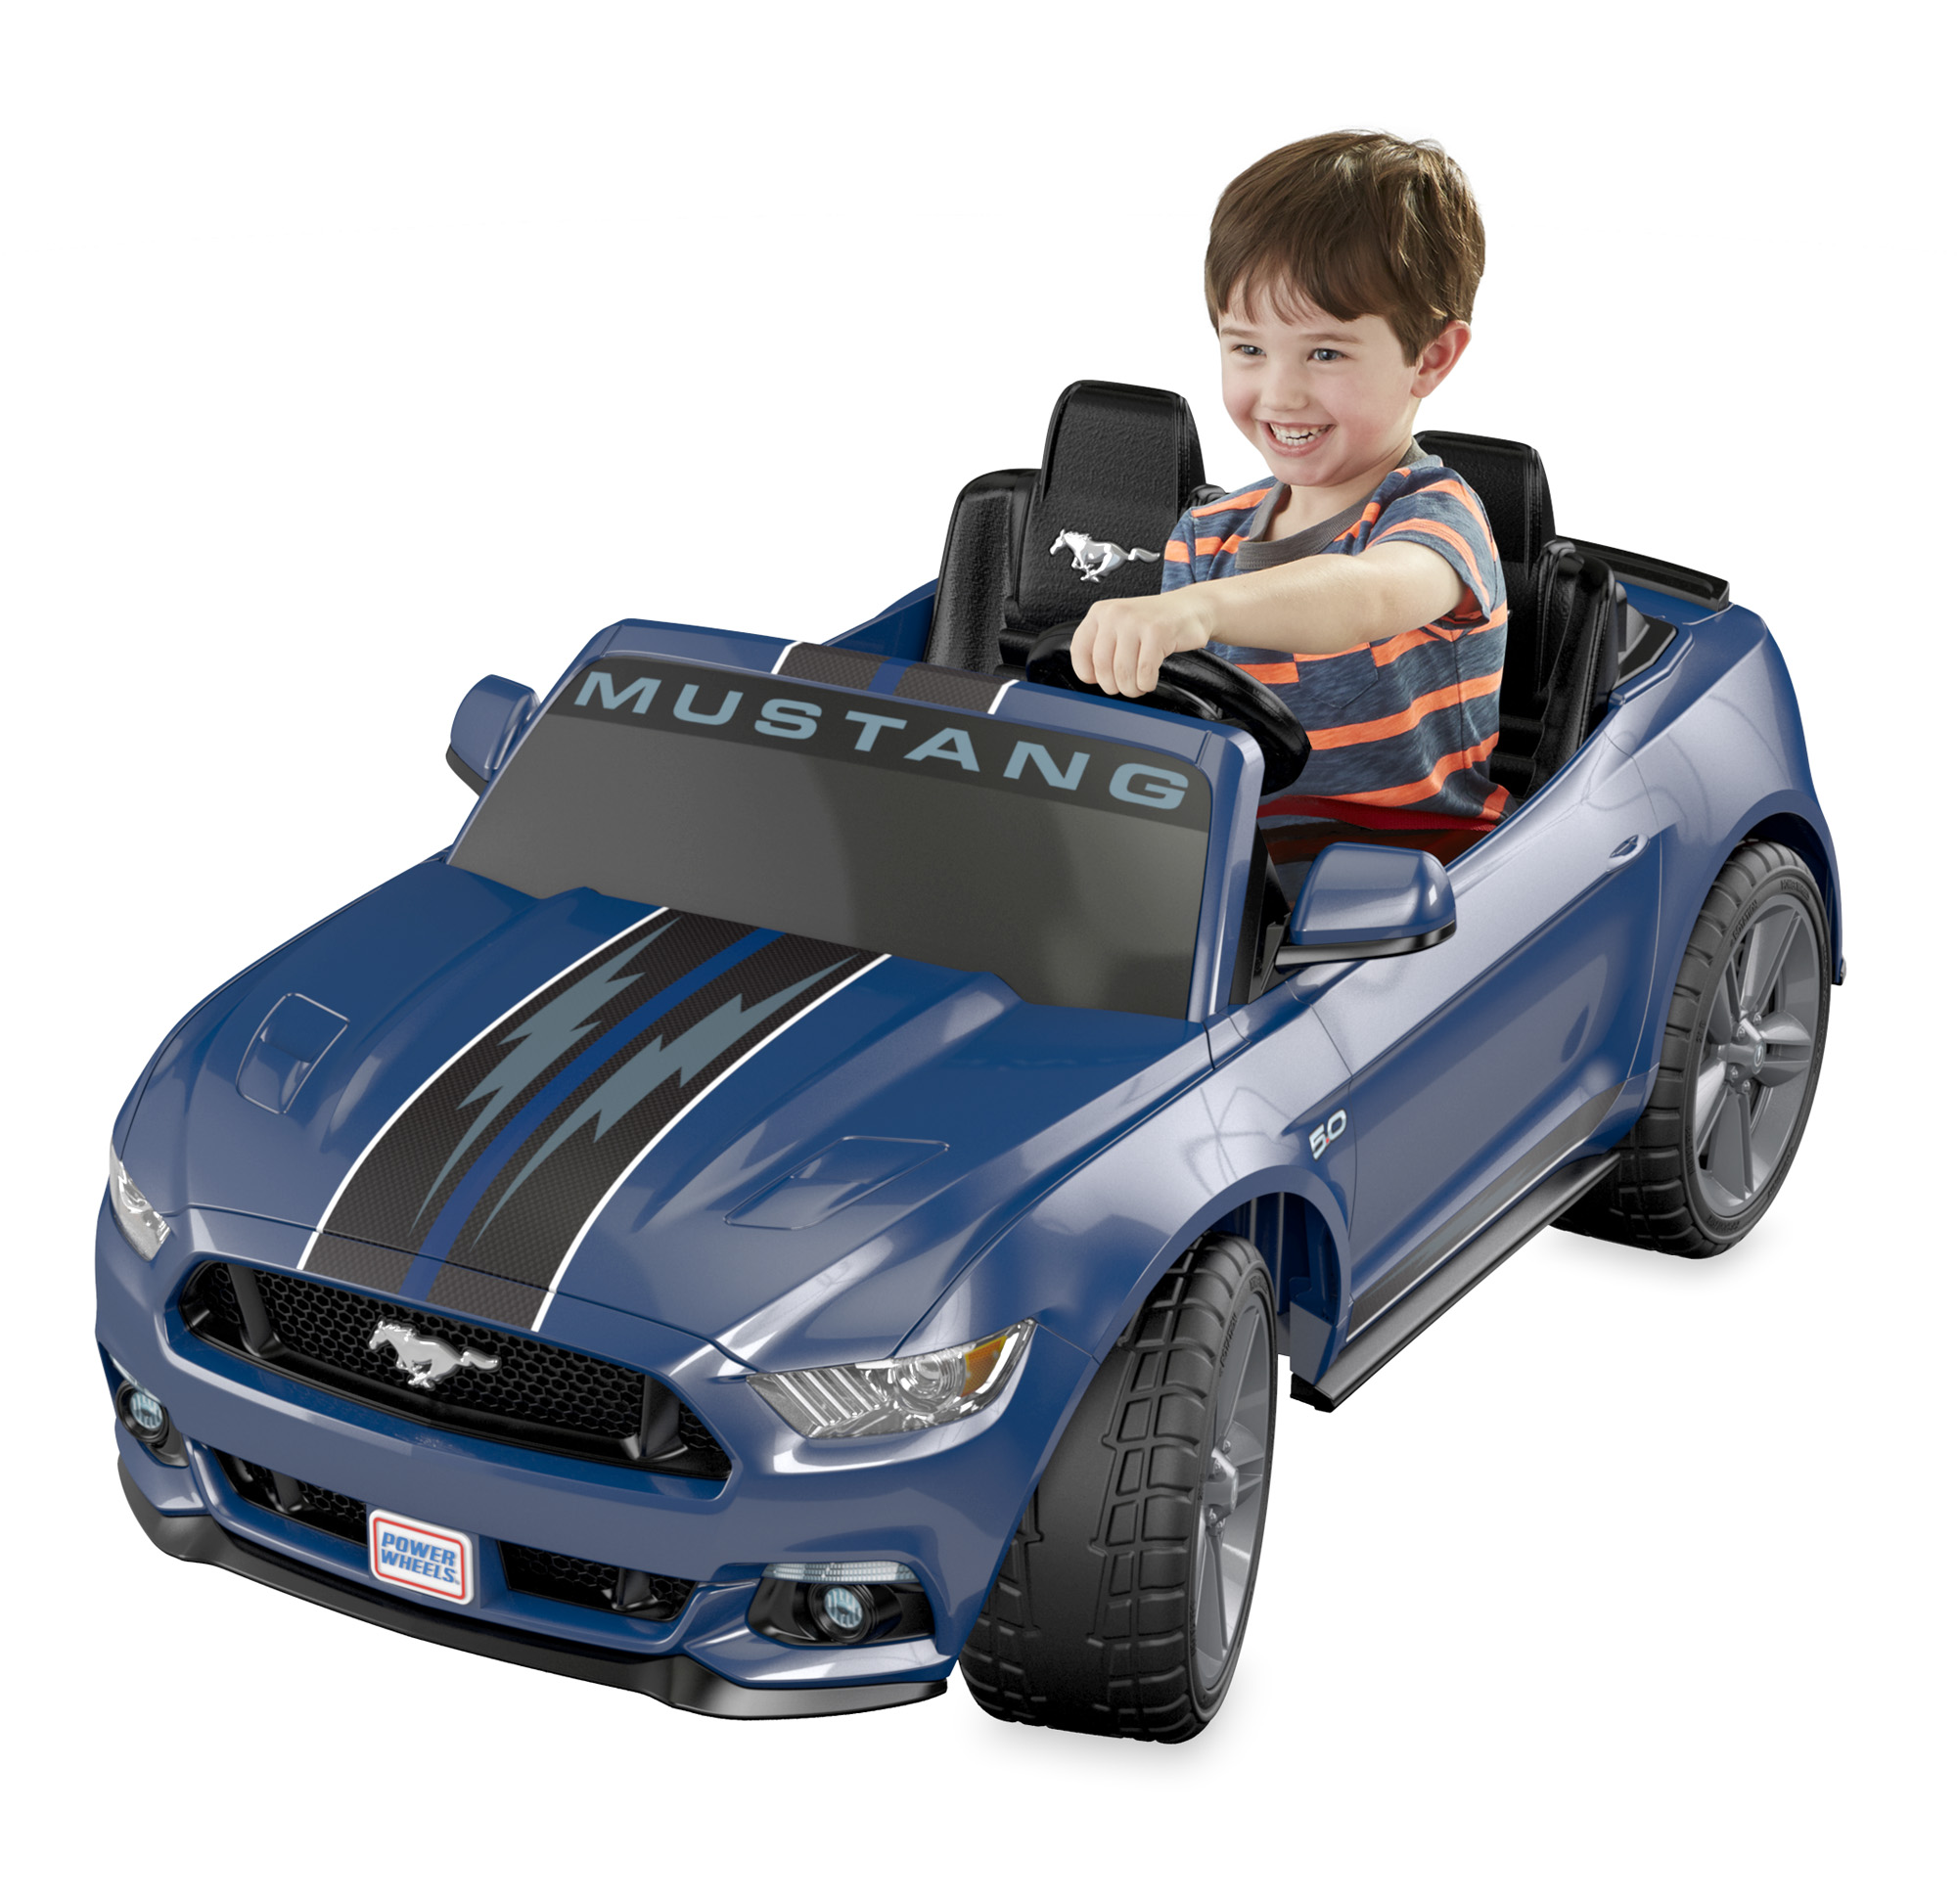 Power Wheels Smart Drive Ford Mustang